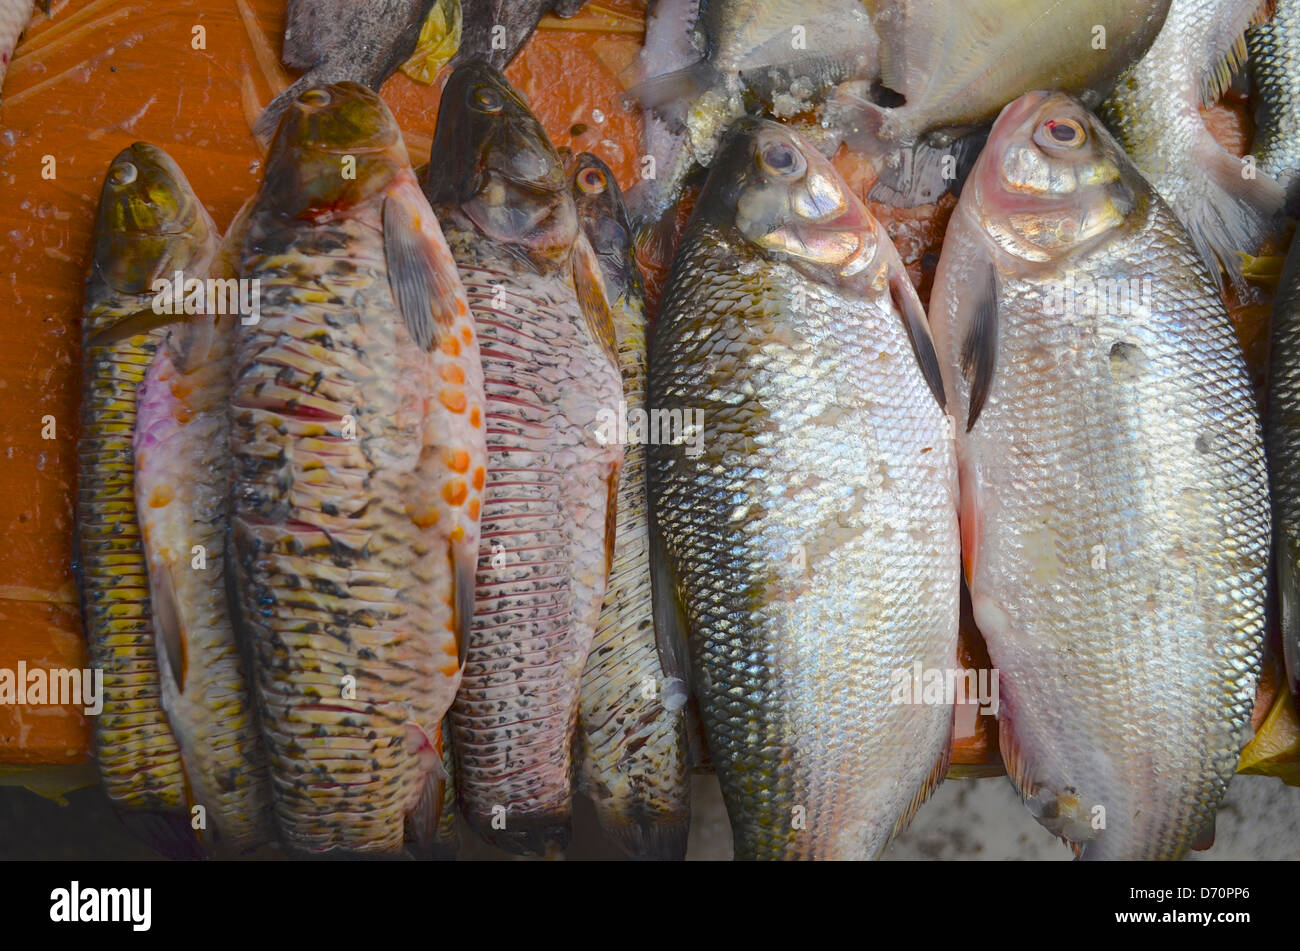 Freshwater fish amazon - Freshwater Fish On Sale On A Market In Iquitos Peruvian Amazon